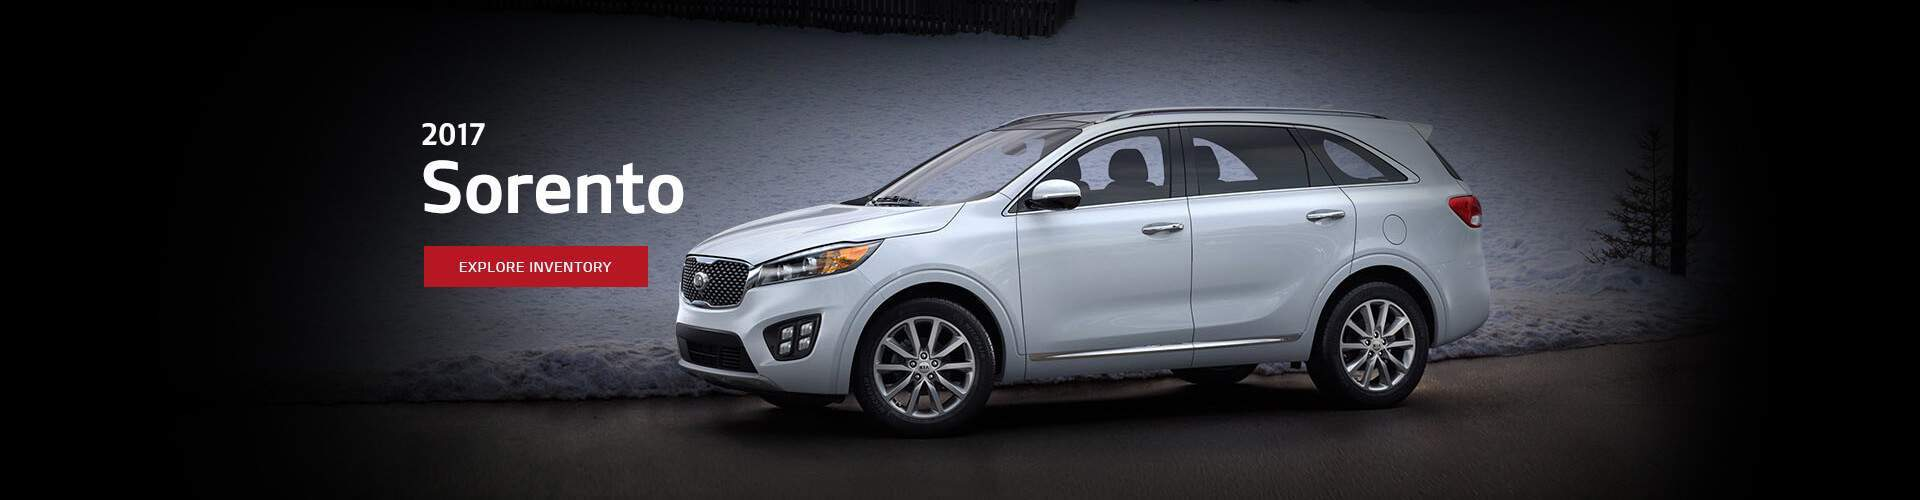 New Kia Sorento at Kia of Easton